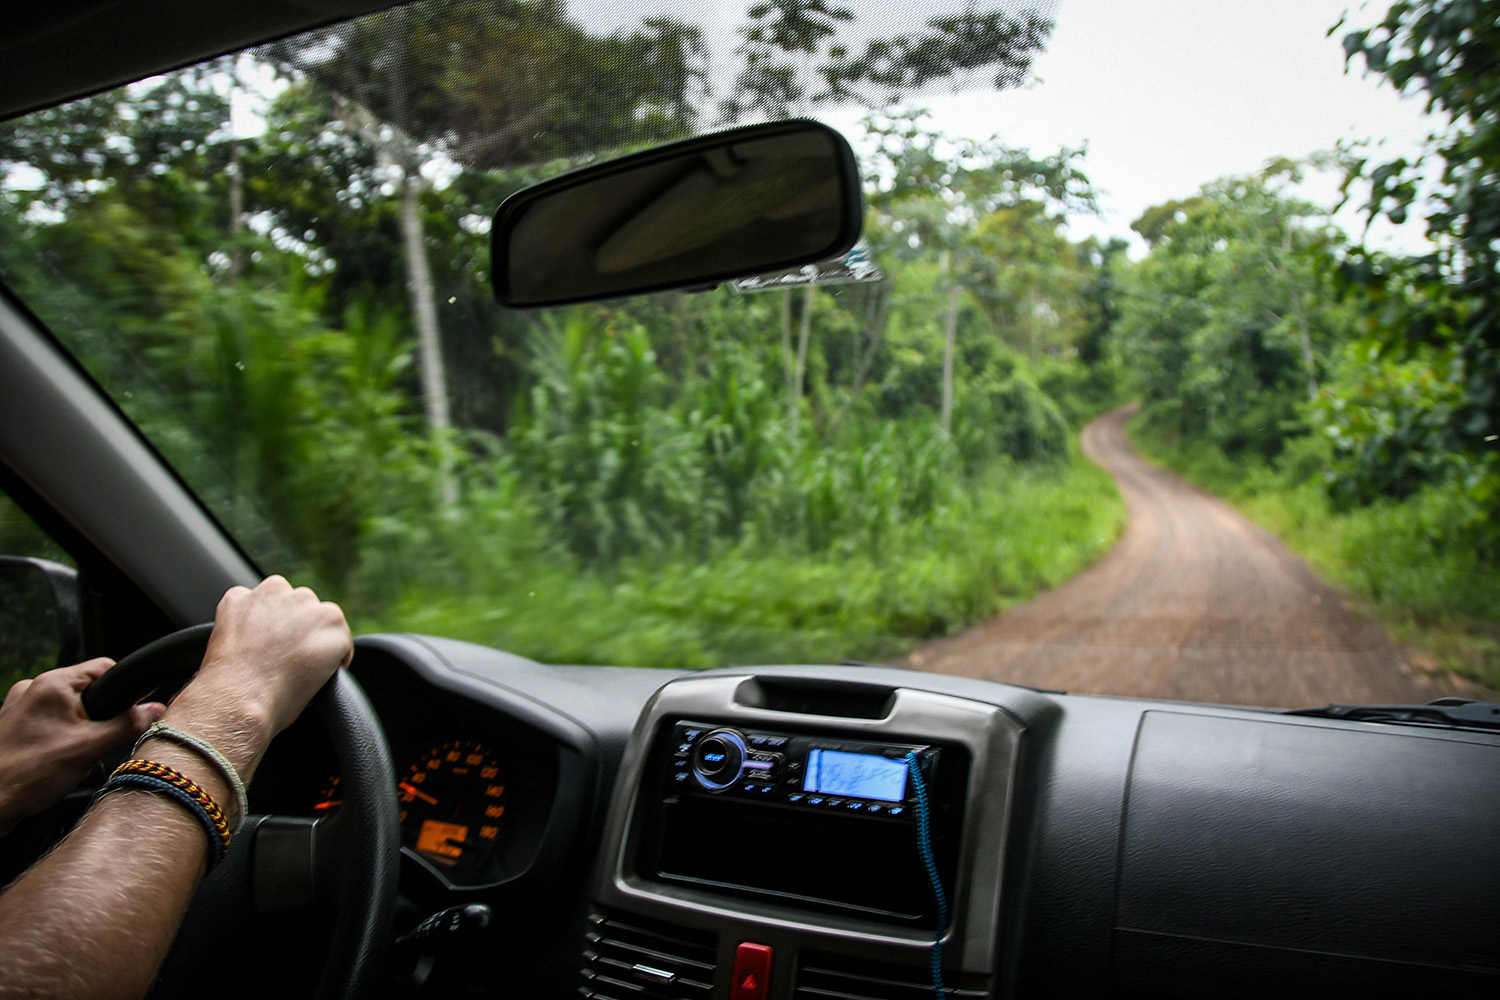 Puerto Viejo Travel Guide Driving a Car